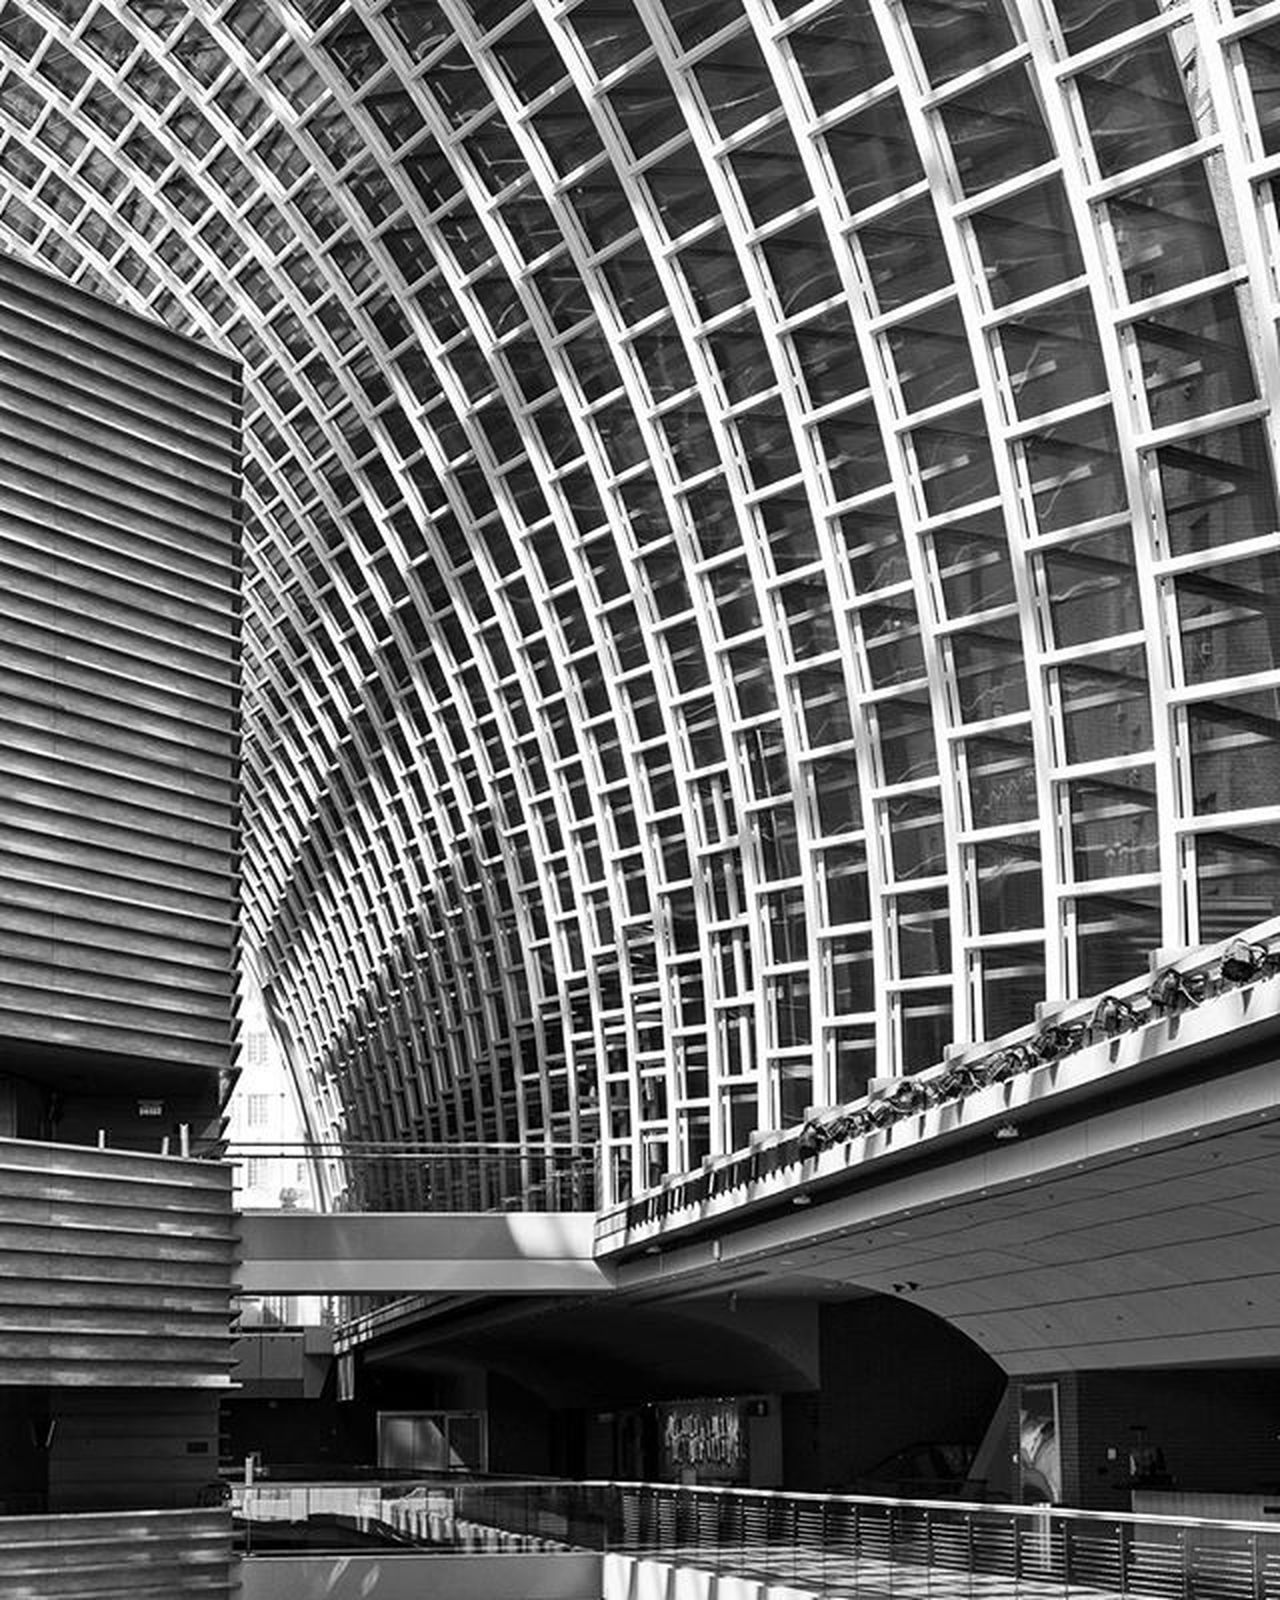 Ever Expanding Architecture Phillyarchitecture Cityholderarchitecture Glassceiling Philadelphia Philly Bw_philly Igers_philly Igphilly Visitphilly Liphillyfe Howphillyseesphilly Blackandwhite Bnw_igers Bnw_magazine Bnw_life Bnw_society Bnw_planet Bnw Bw Rustlord_bnw Rustlord_archdesign Bnw_madrid_september